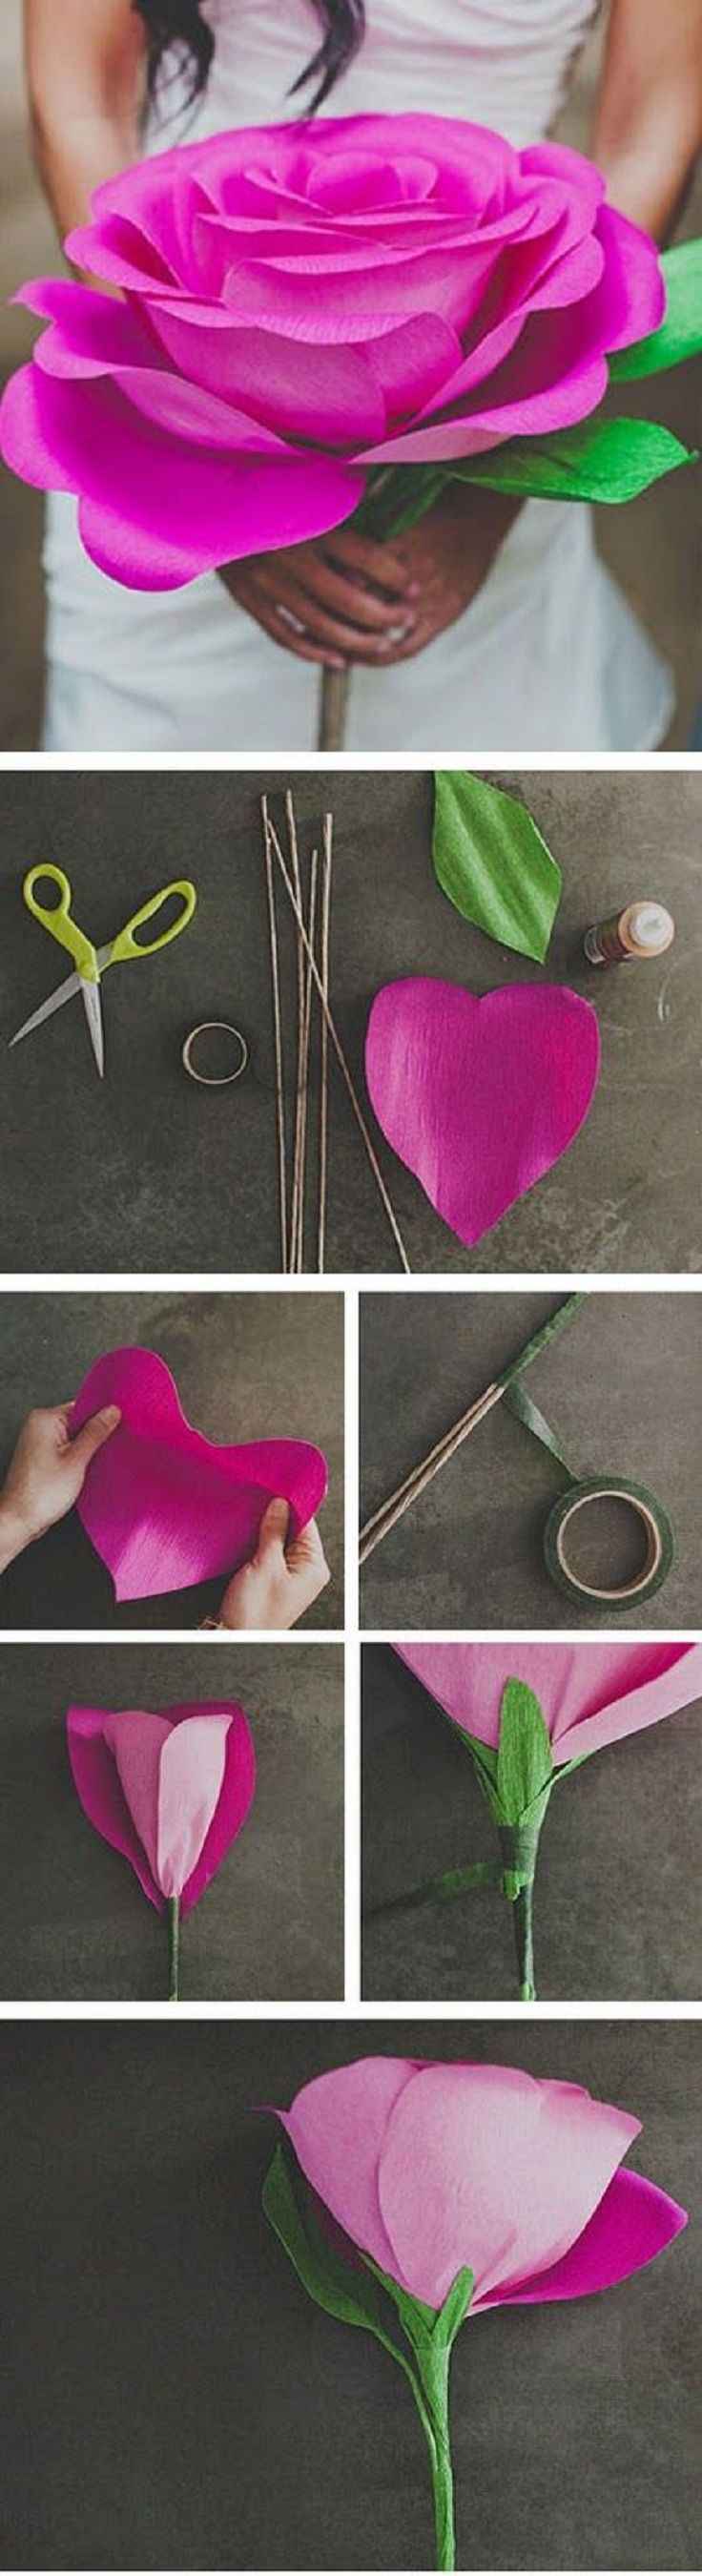 DIY Giant Paper Rose Flower  Diy paper Flowers and Craft